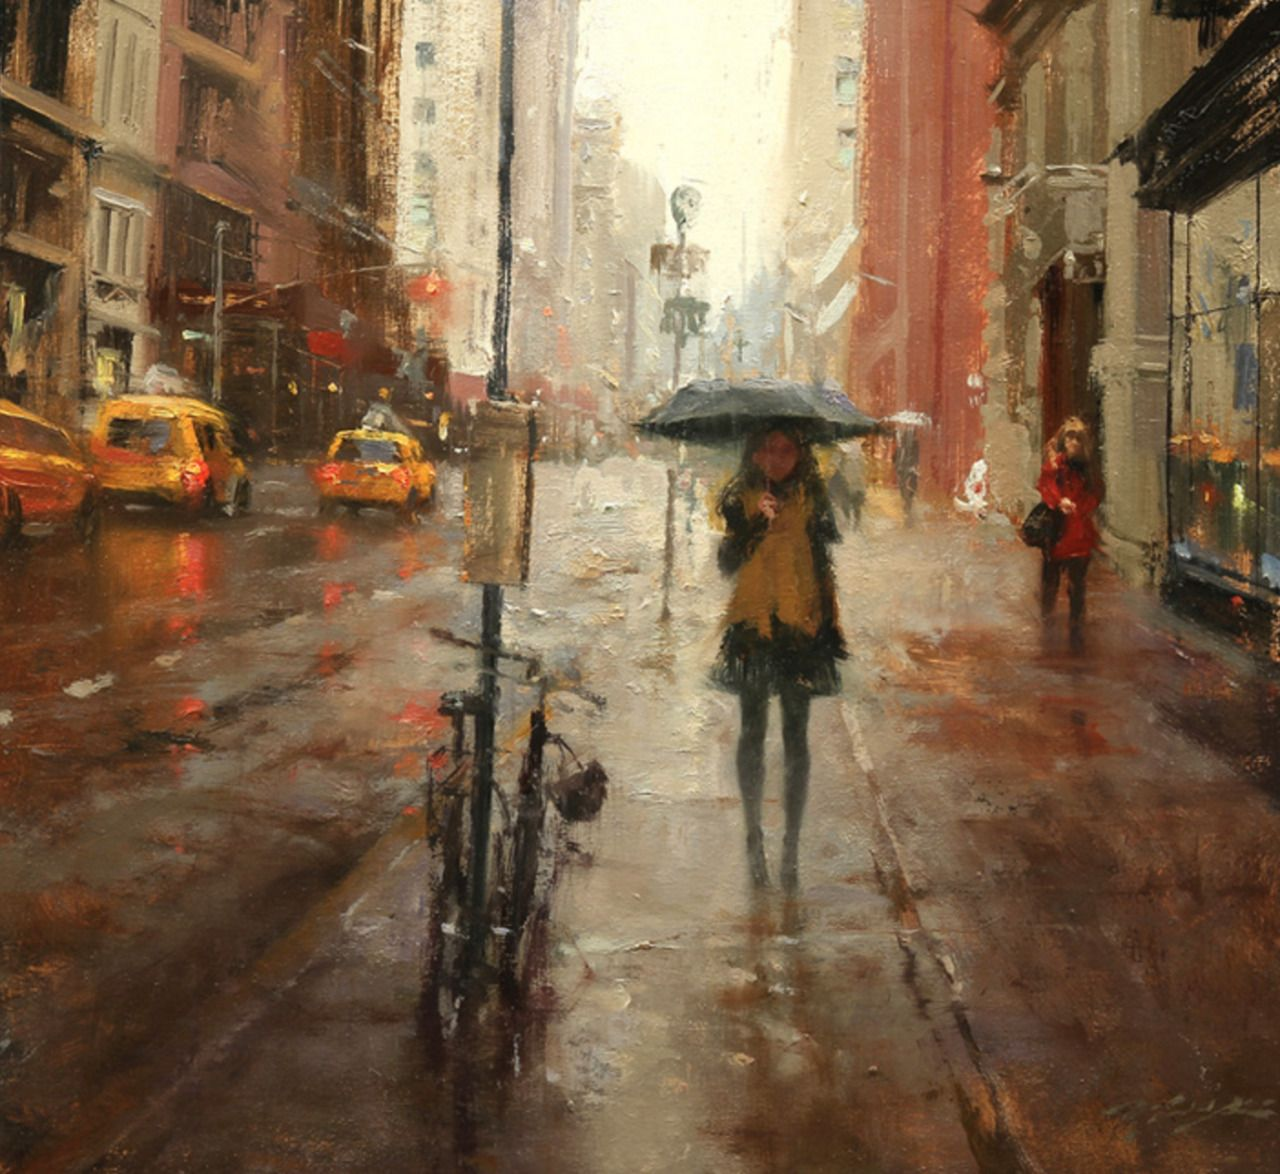 Hsin-Yao Tseng, Paintings.Emotionally potent, impressionistic cityscapes and figurative paintings by artist Hsin-Yao Tseng. Do you follow Supersonic Art on Instagram? You should definitely continue...